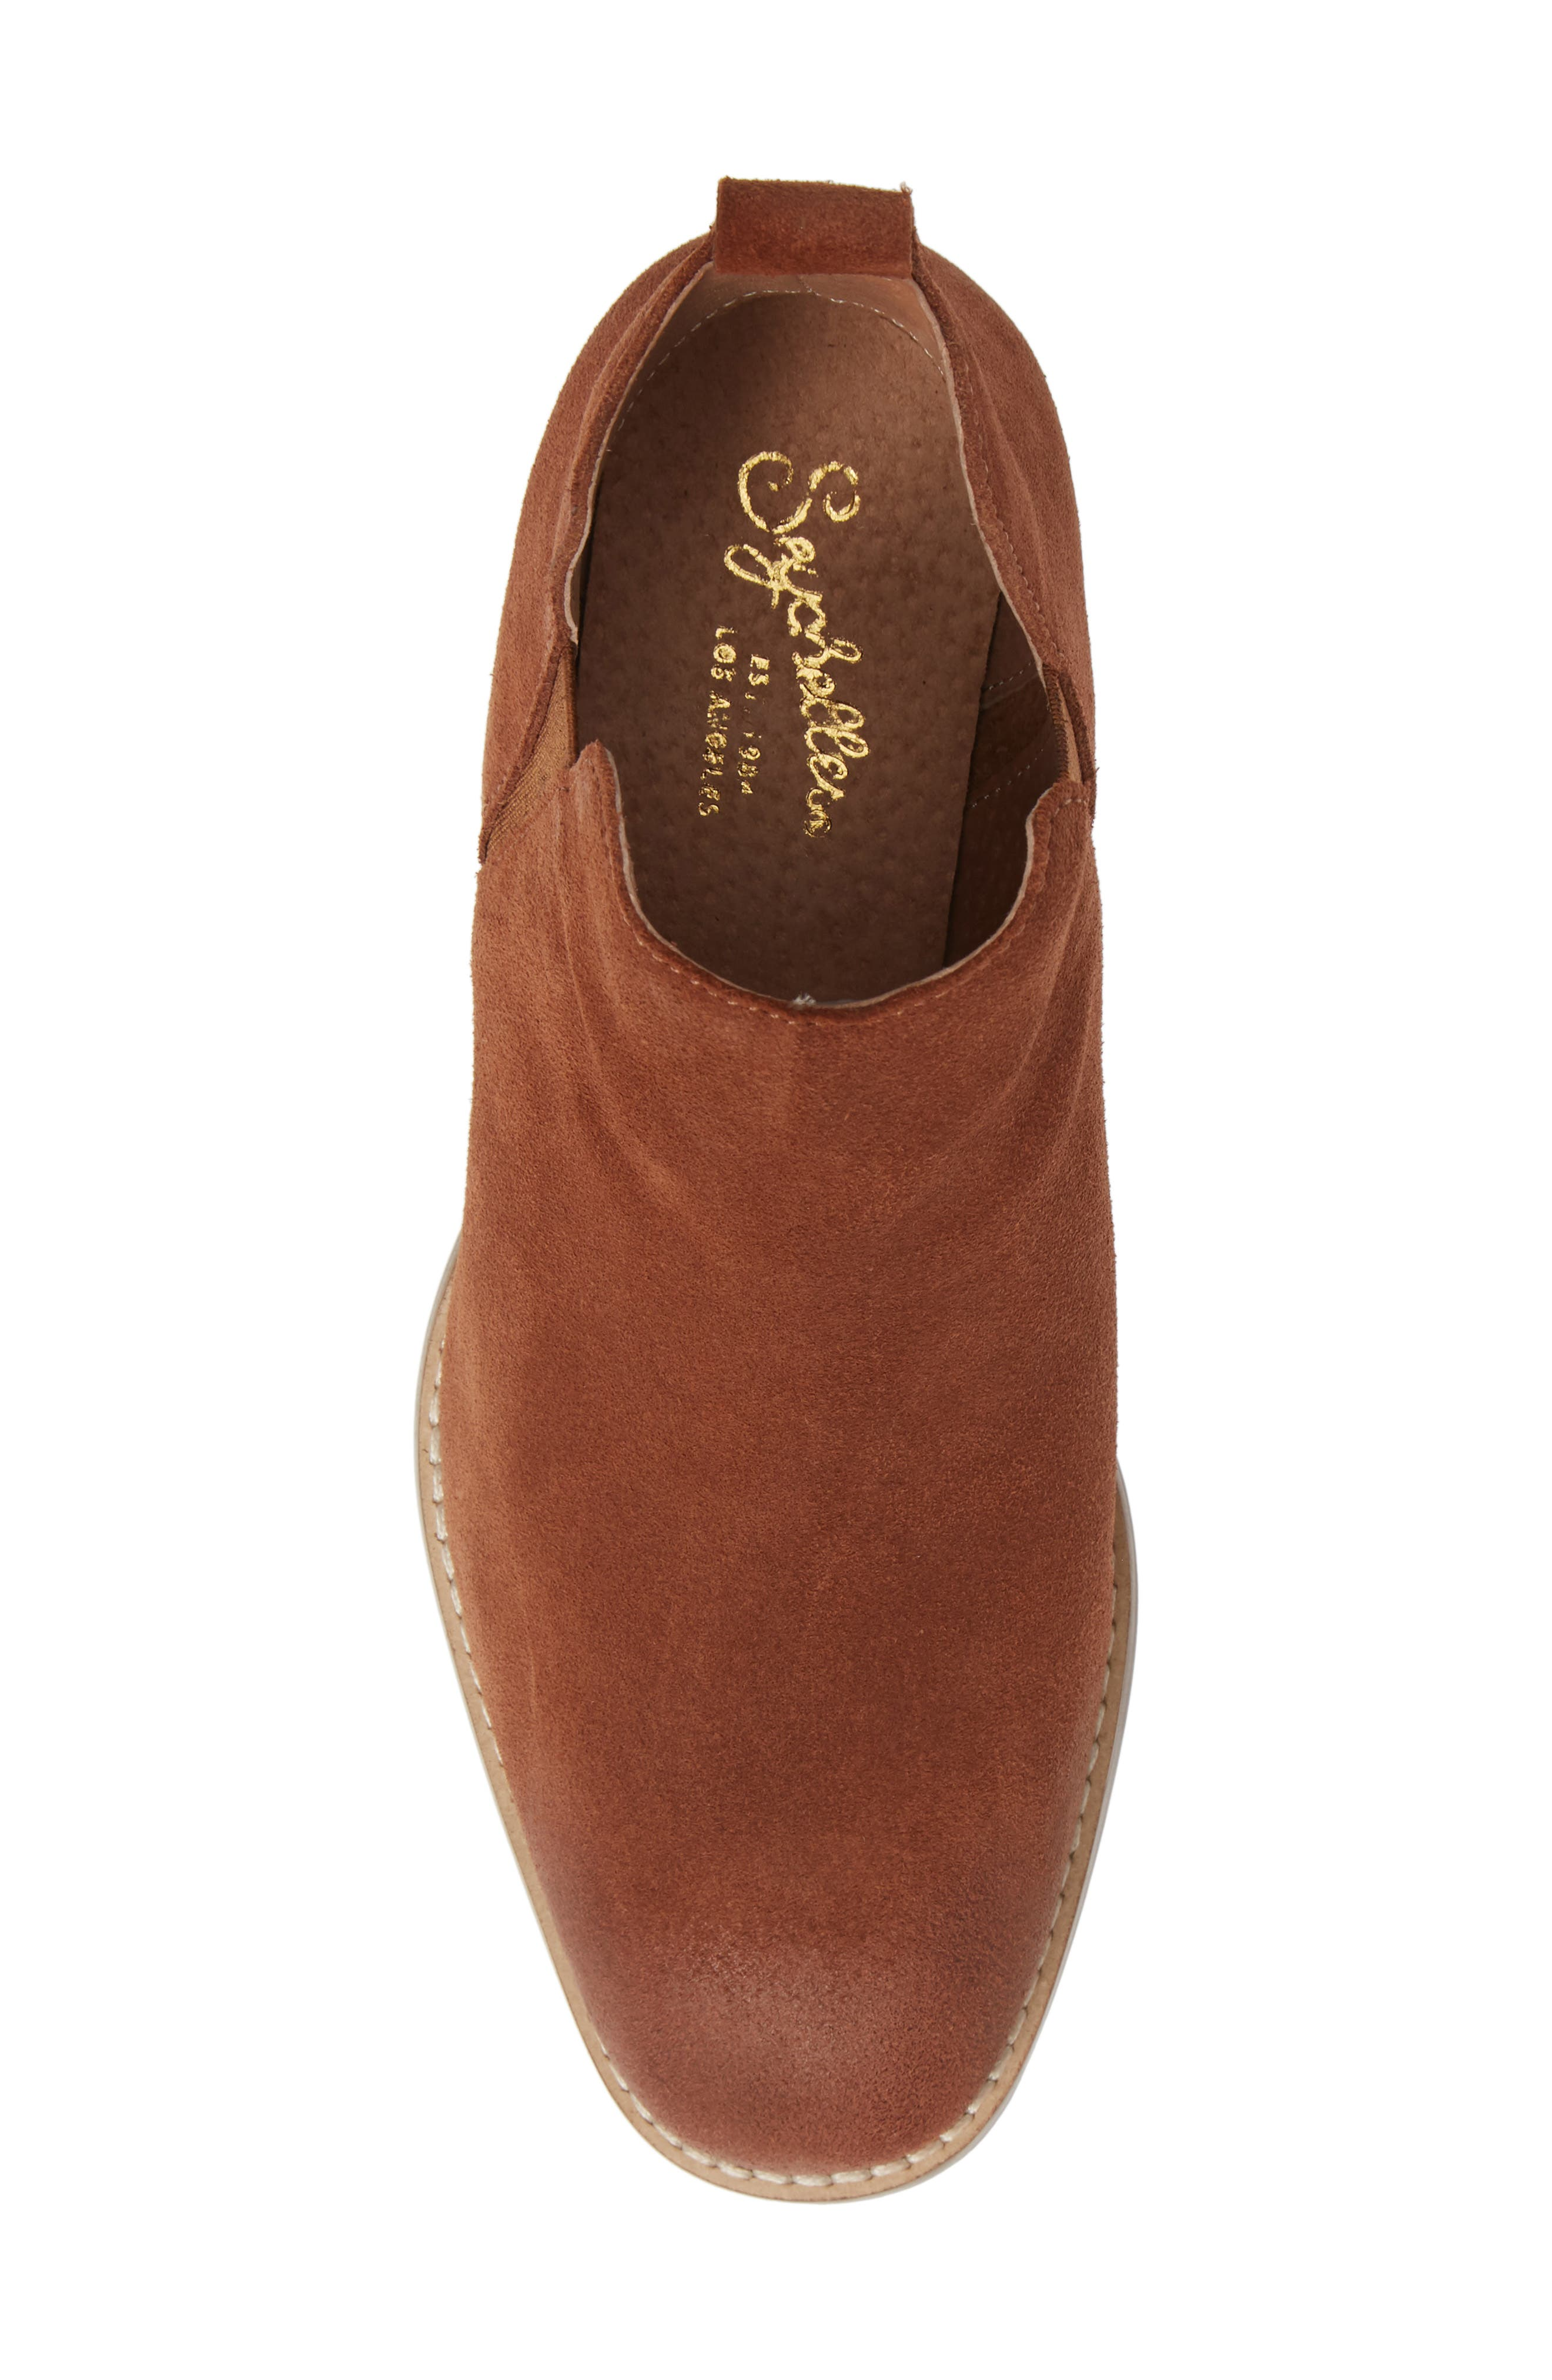 Offstage Boot,                             Alternate thumbnail 5, color,                             COGNAC SUEDE